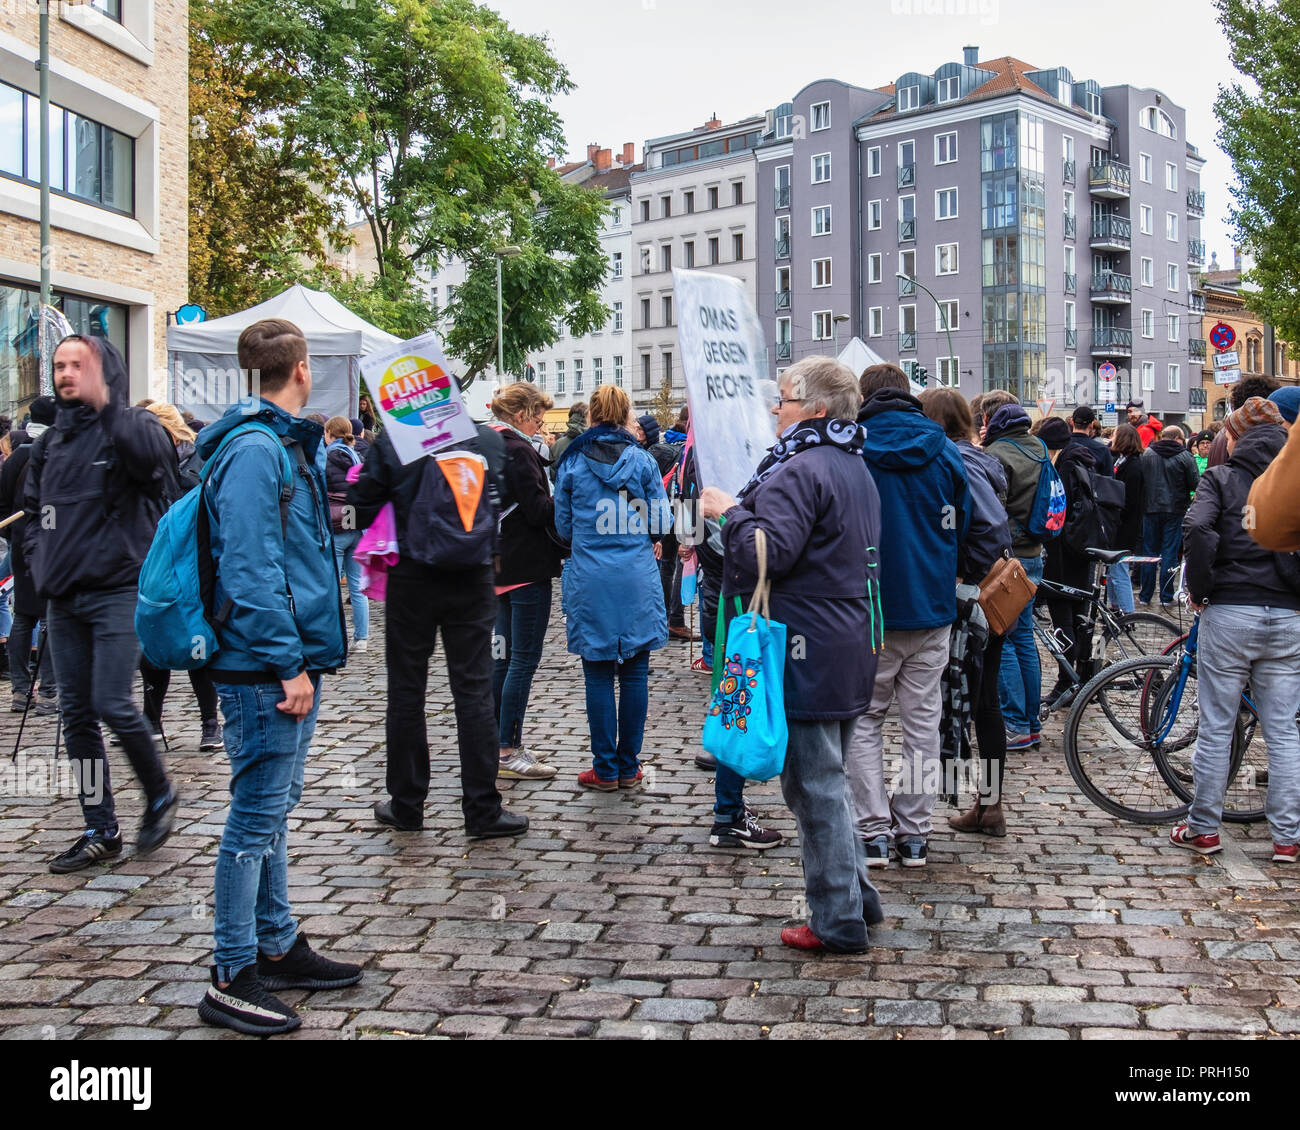 """Berlin, Mitte, Germany 3 October 2018. People protest against a right-wing extremist demonstration. Local residents gathered at Pappelplatz to oppose the planned demonstrations of WFD Right Wing group on the German Day of Unity. The counter-protest event was planned by the resident's initiative for Civil courage opposing the right wing activists (Anwohnerinitiative für Zivilcourage – Gegen Rechts). The right-wing extremist organization """"Wir für Deutschland (WFD)"""" plans to march from Hauptbahnhof through the centre of Berlin using the slogan 'Day of the Nation' Credit: Eden Breitz/Alamy Live Ne - Stock Image"""